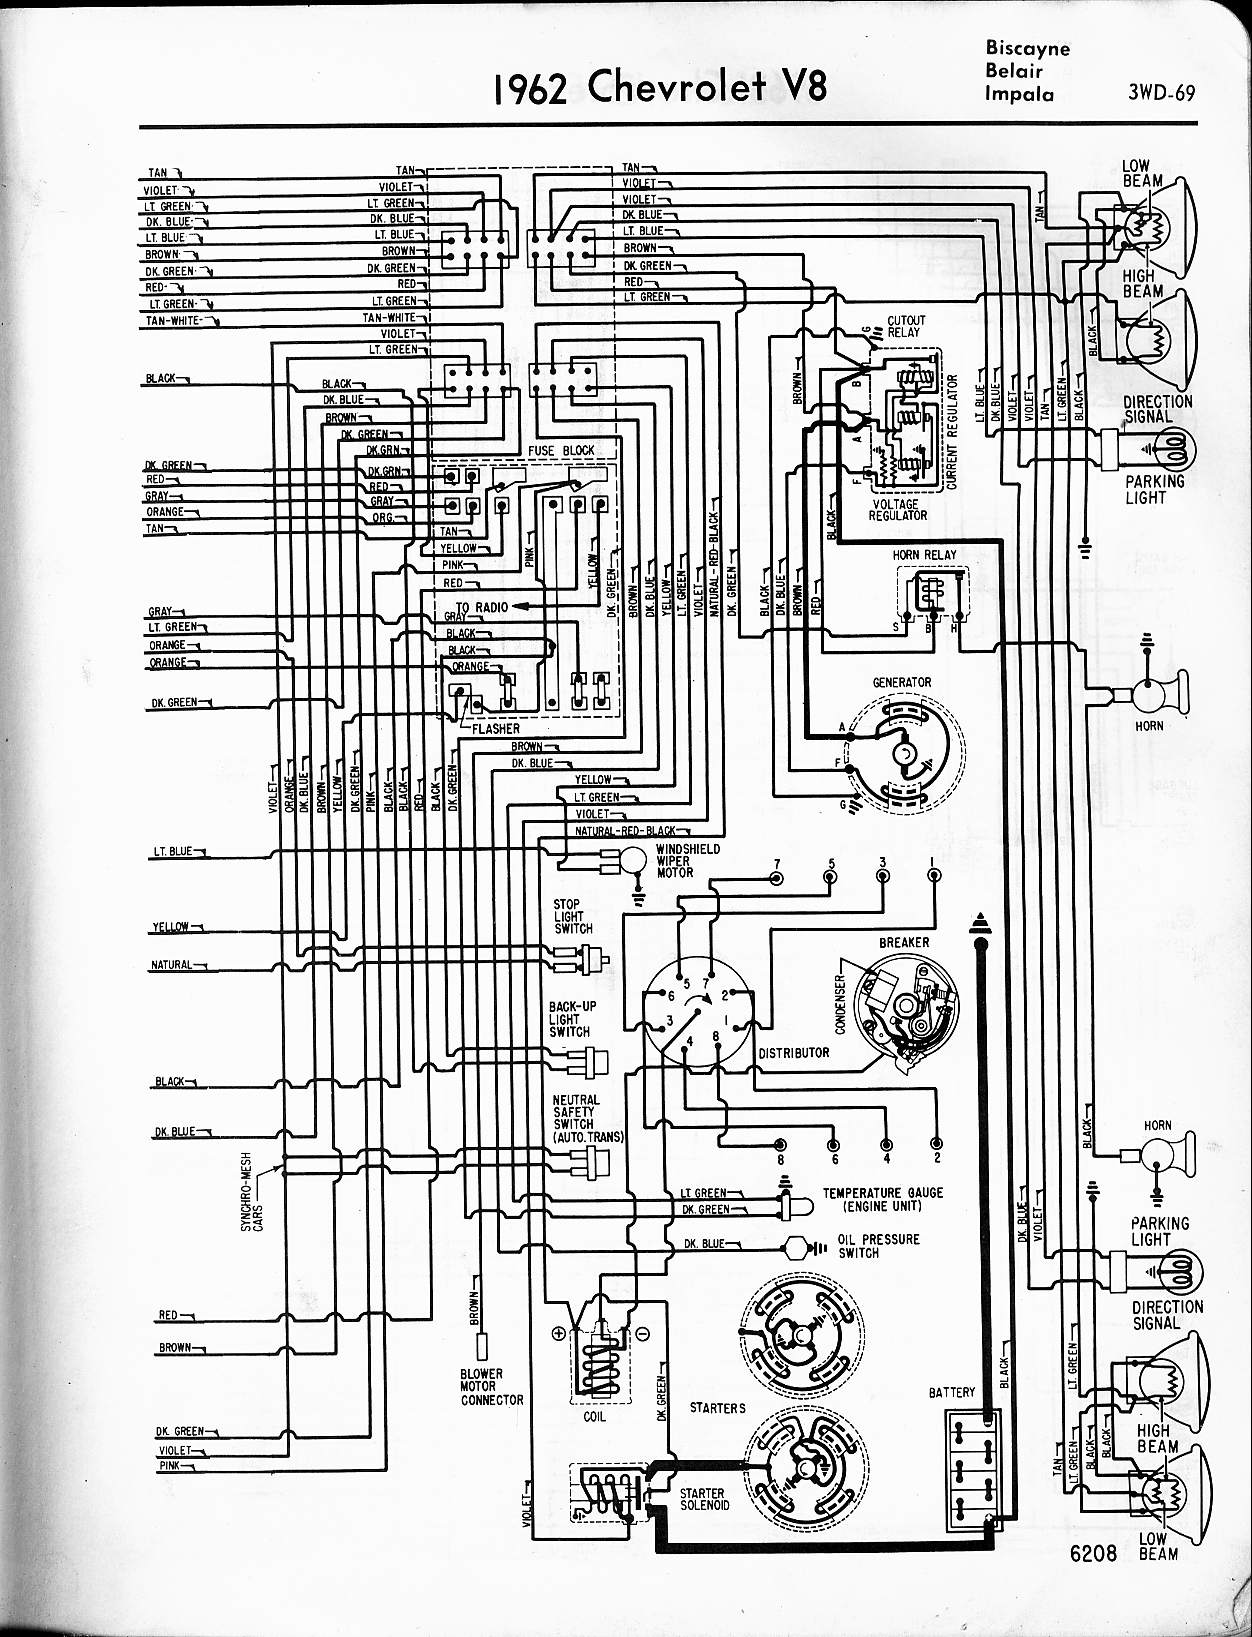 57 Chevy Wire Diagram Worksheet And Wiring 1957 62 Impala Diagrams Detailed Schematics Rh Jppastryarts Com Truck Turn Signal